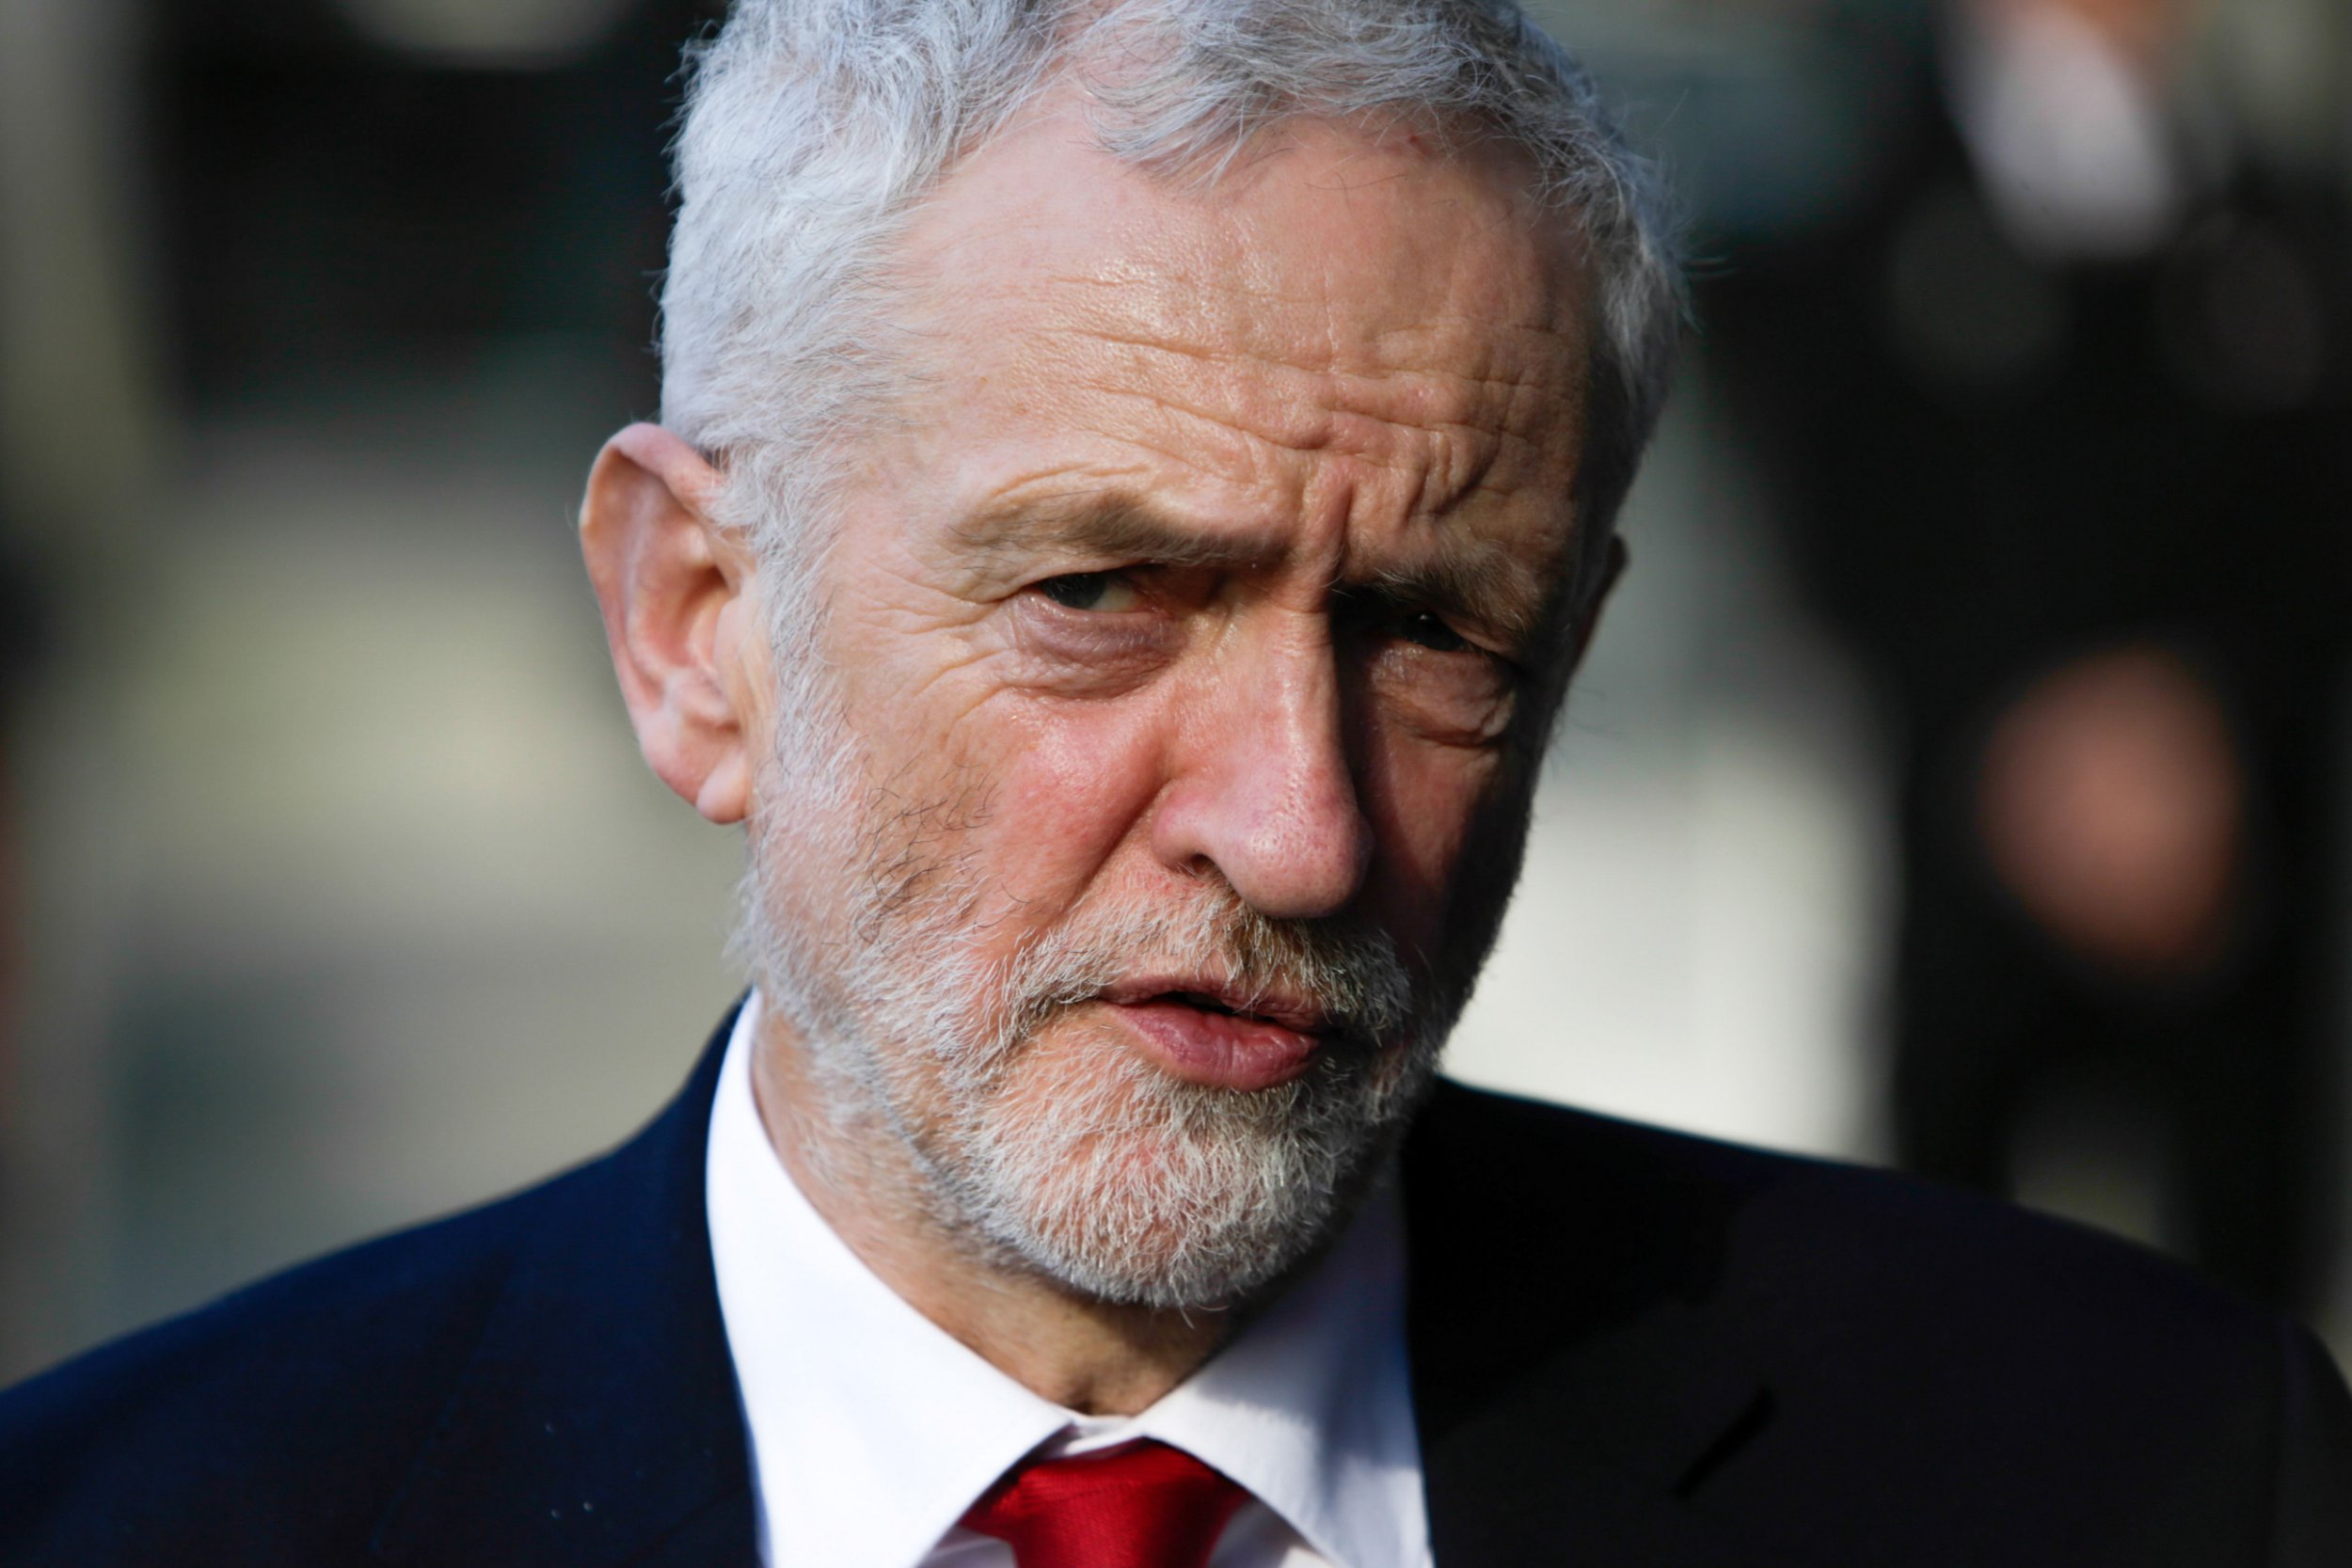 Britain's main opposition Labour Party leader Jeremy Corbyn answers journalists' questions as he leaves the EU Commission in Brussels on February 21, 2019 after a meeting with EU Brexit negotiator. (Photo by Aris Oikonomou / AFP)ARIS OIKONOMOU/AFP/Getty Images